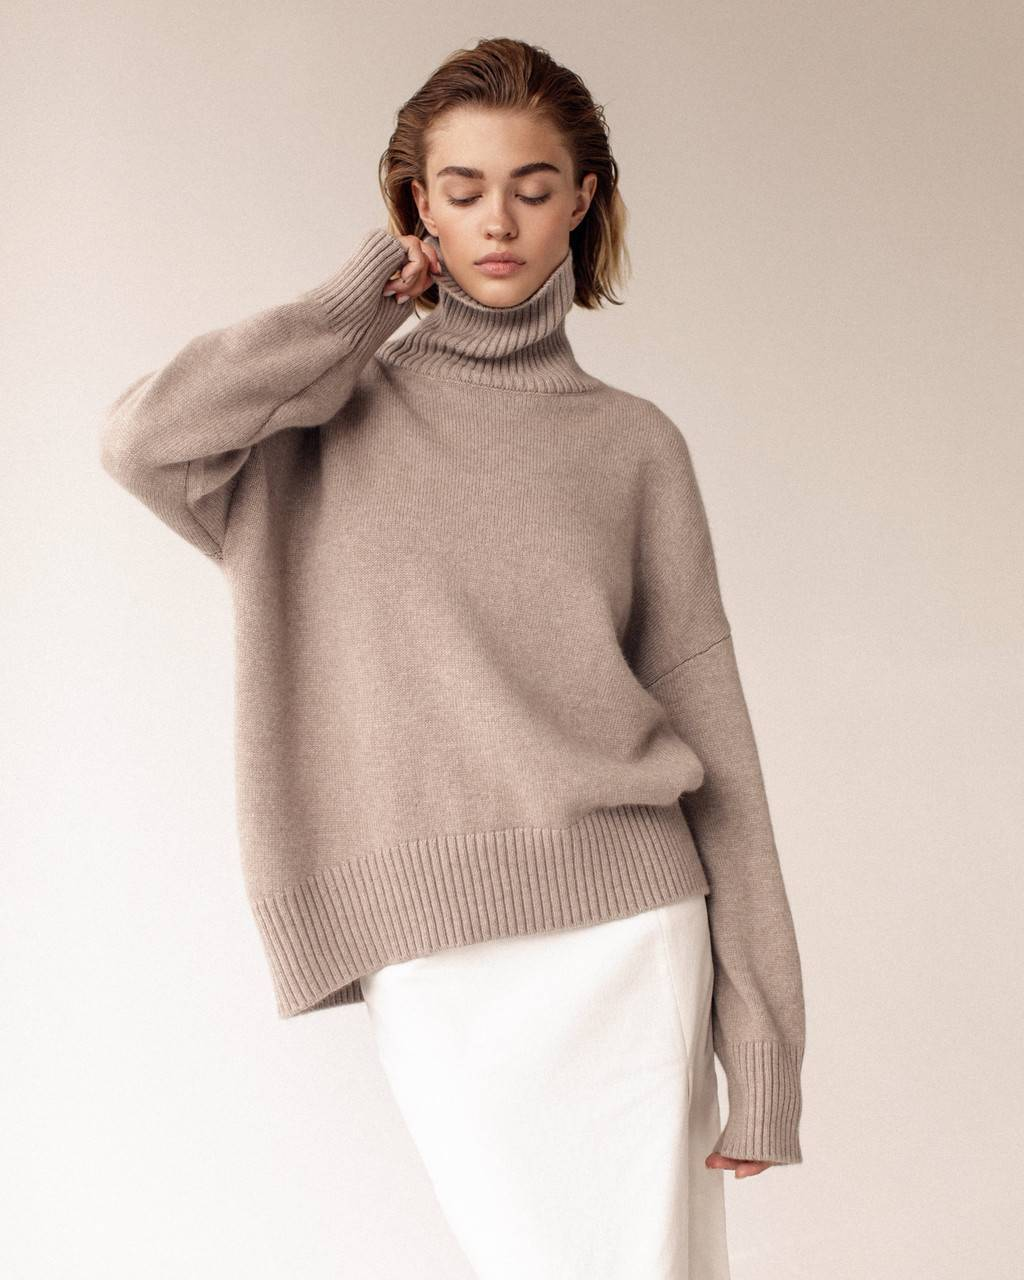 Oversize extra soft 100% cashmere sweater - 460 USD / 390 EUR